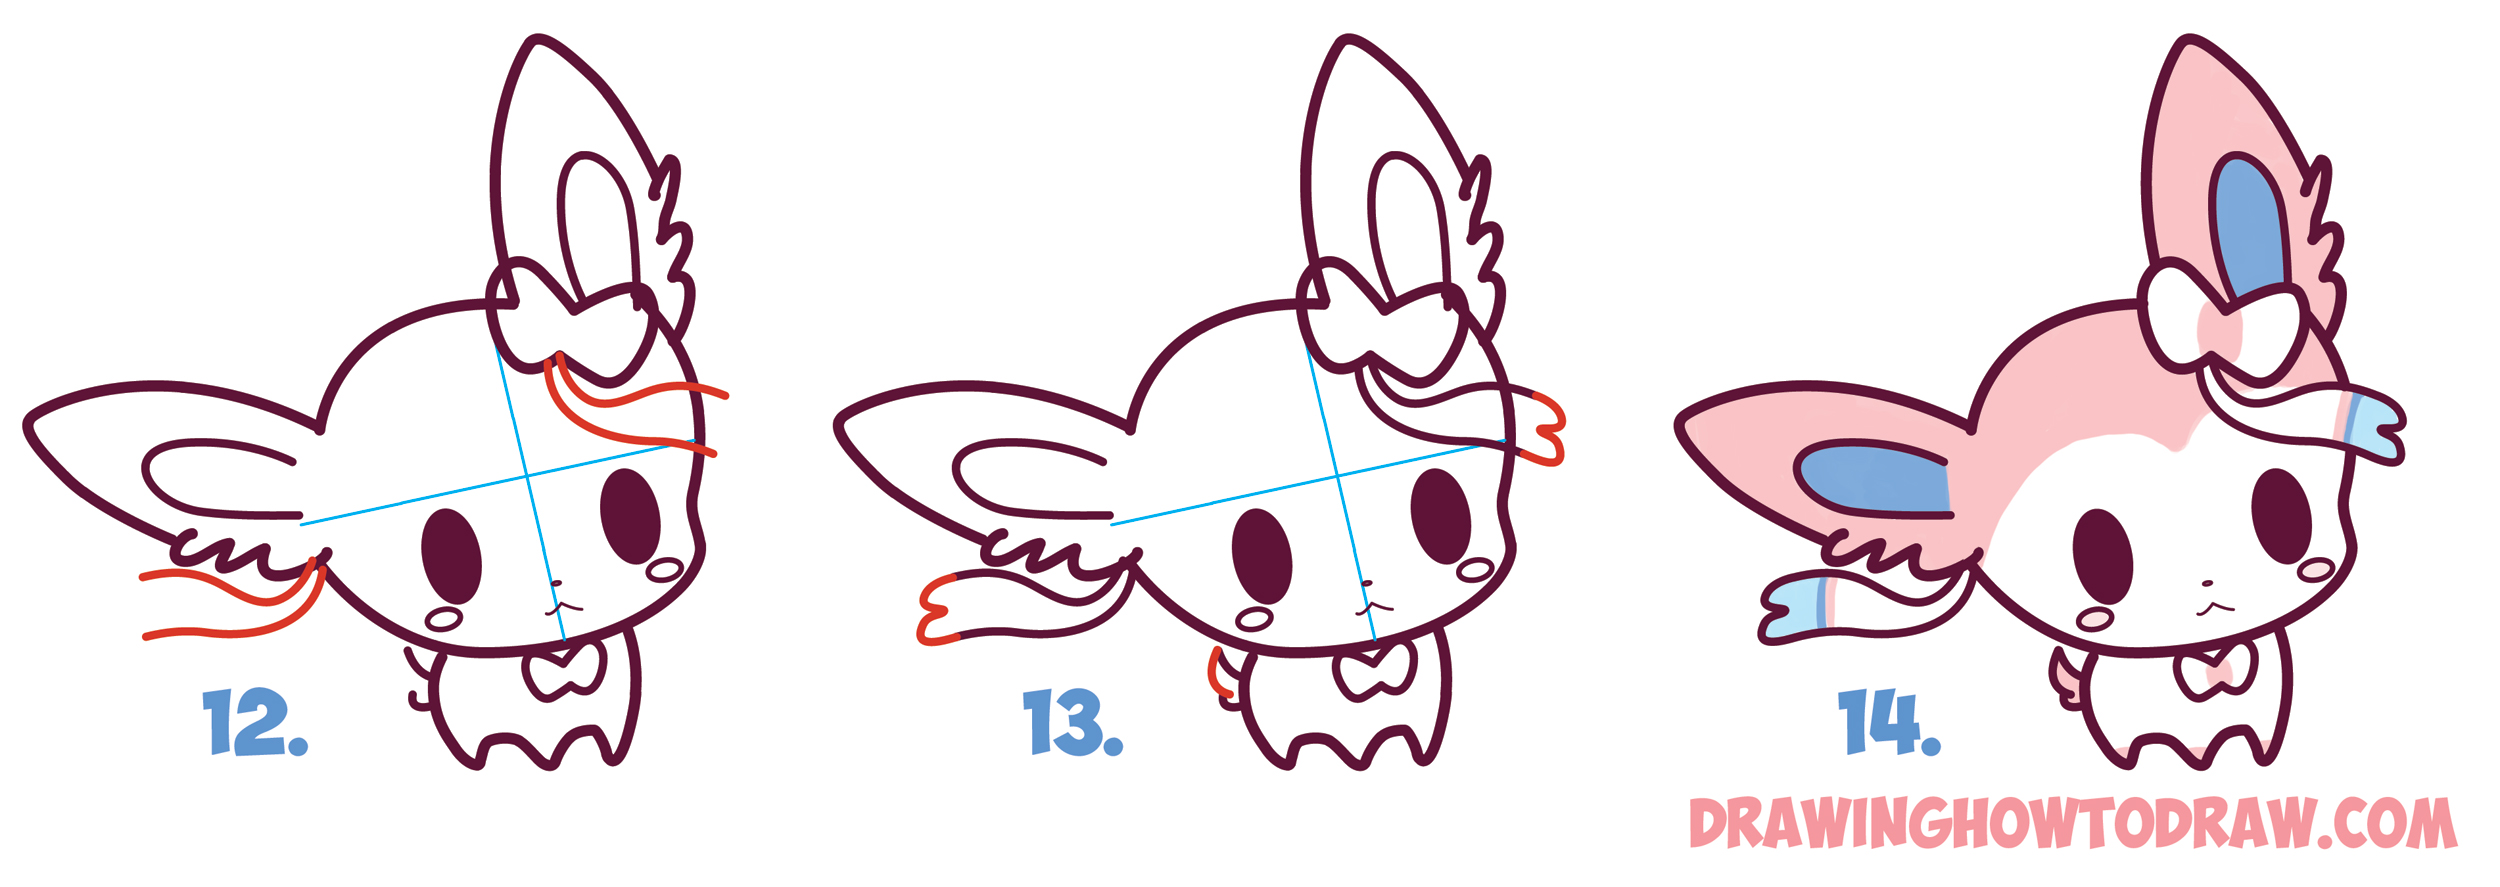 2500x887 How To Draw Cute Chibi Kawaii Sylveon From Pokemon In Easy Step By